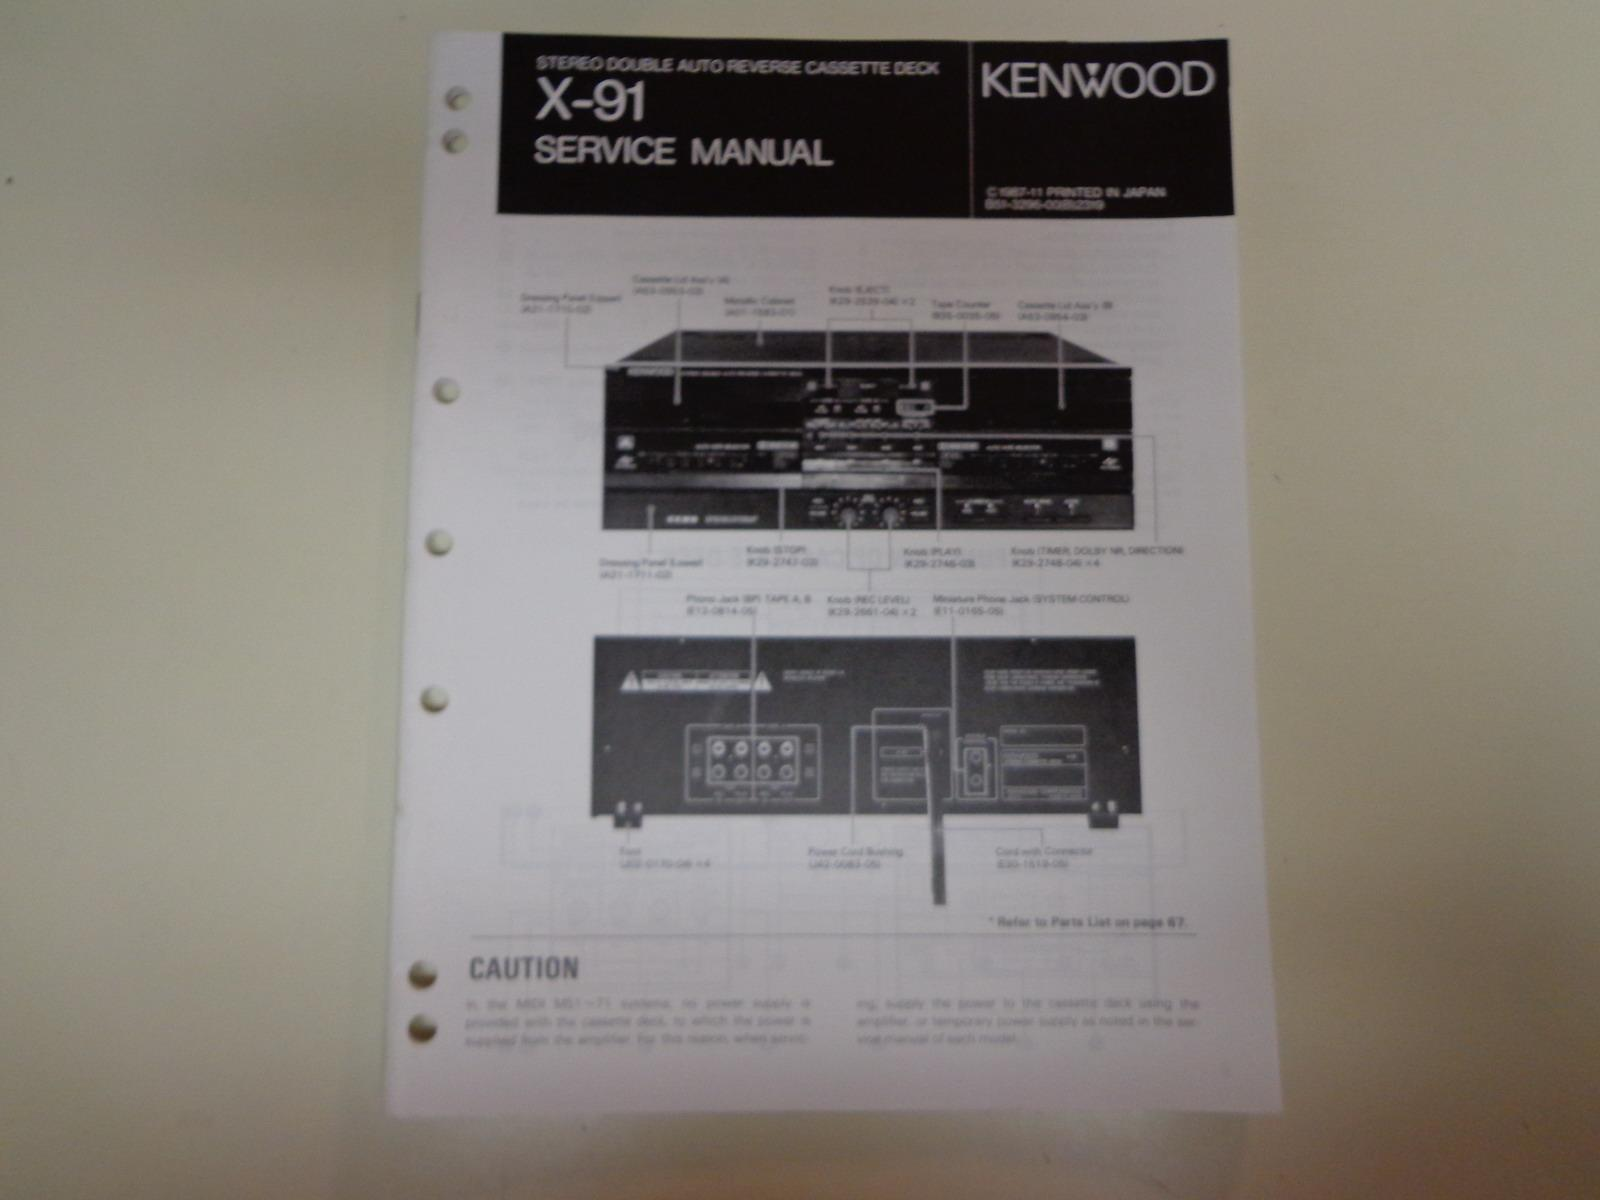 kenwood x 91 stereo double cassette deck factory service manual by rh abebooks co uk Kenwood User Manuals kenwood car deck manual